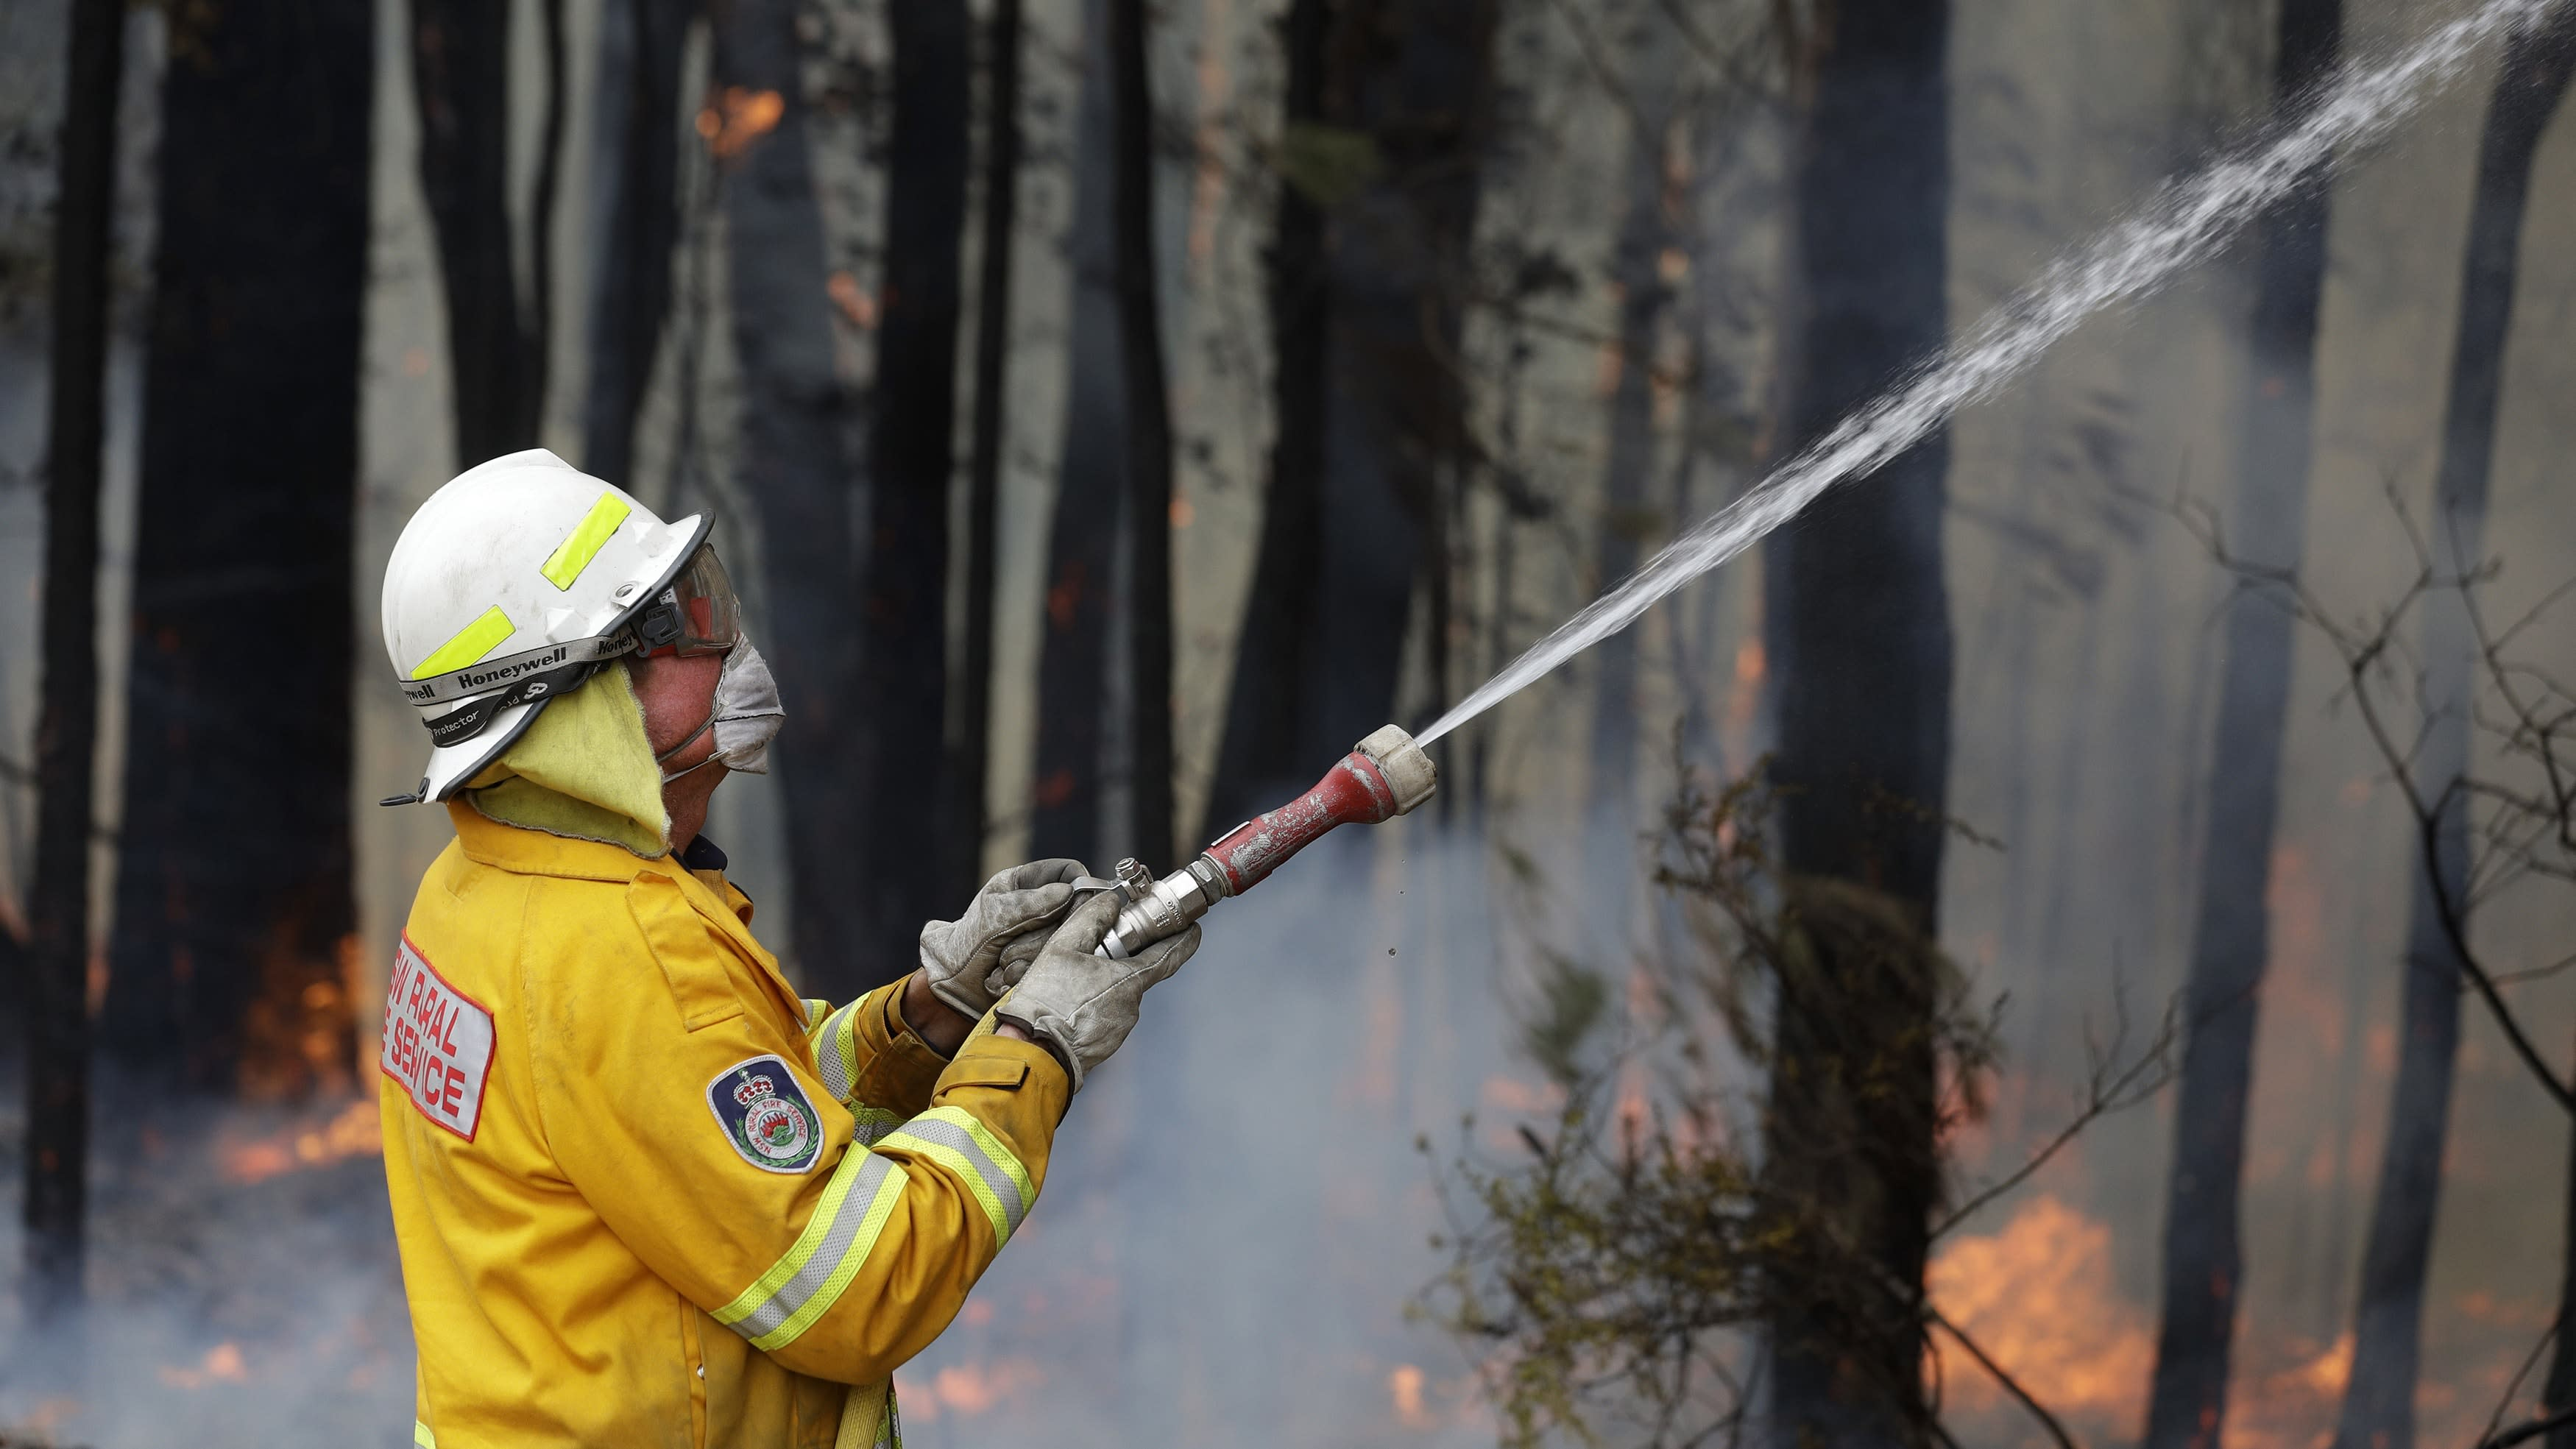 Australian Prime Minister's approval rating scorched by forest fires